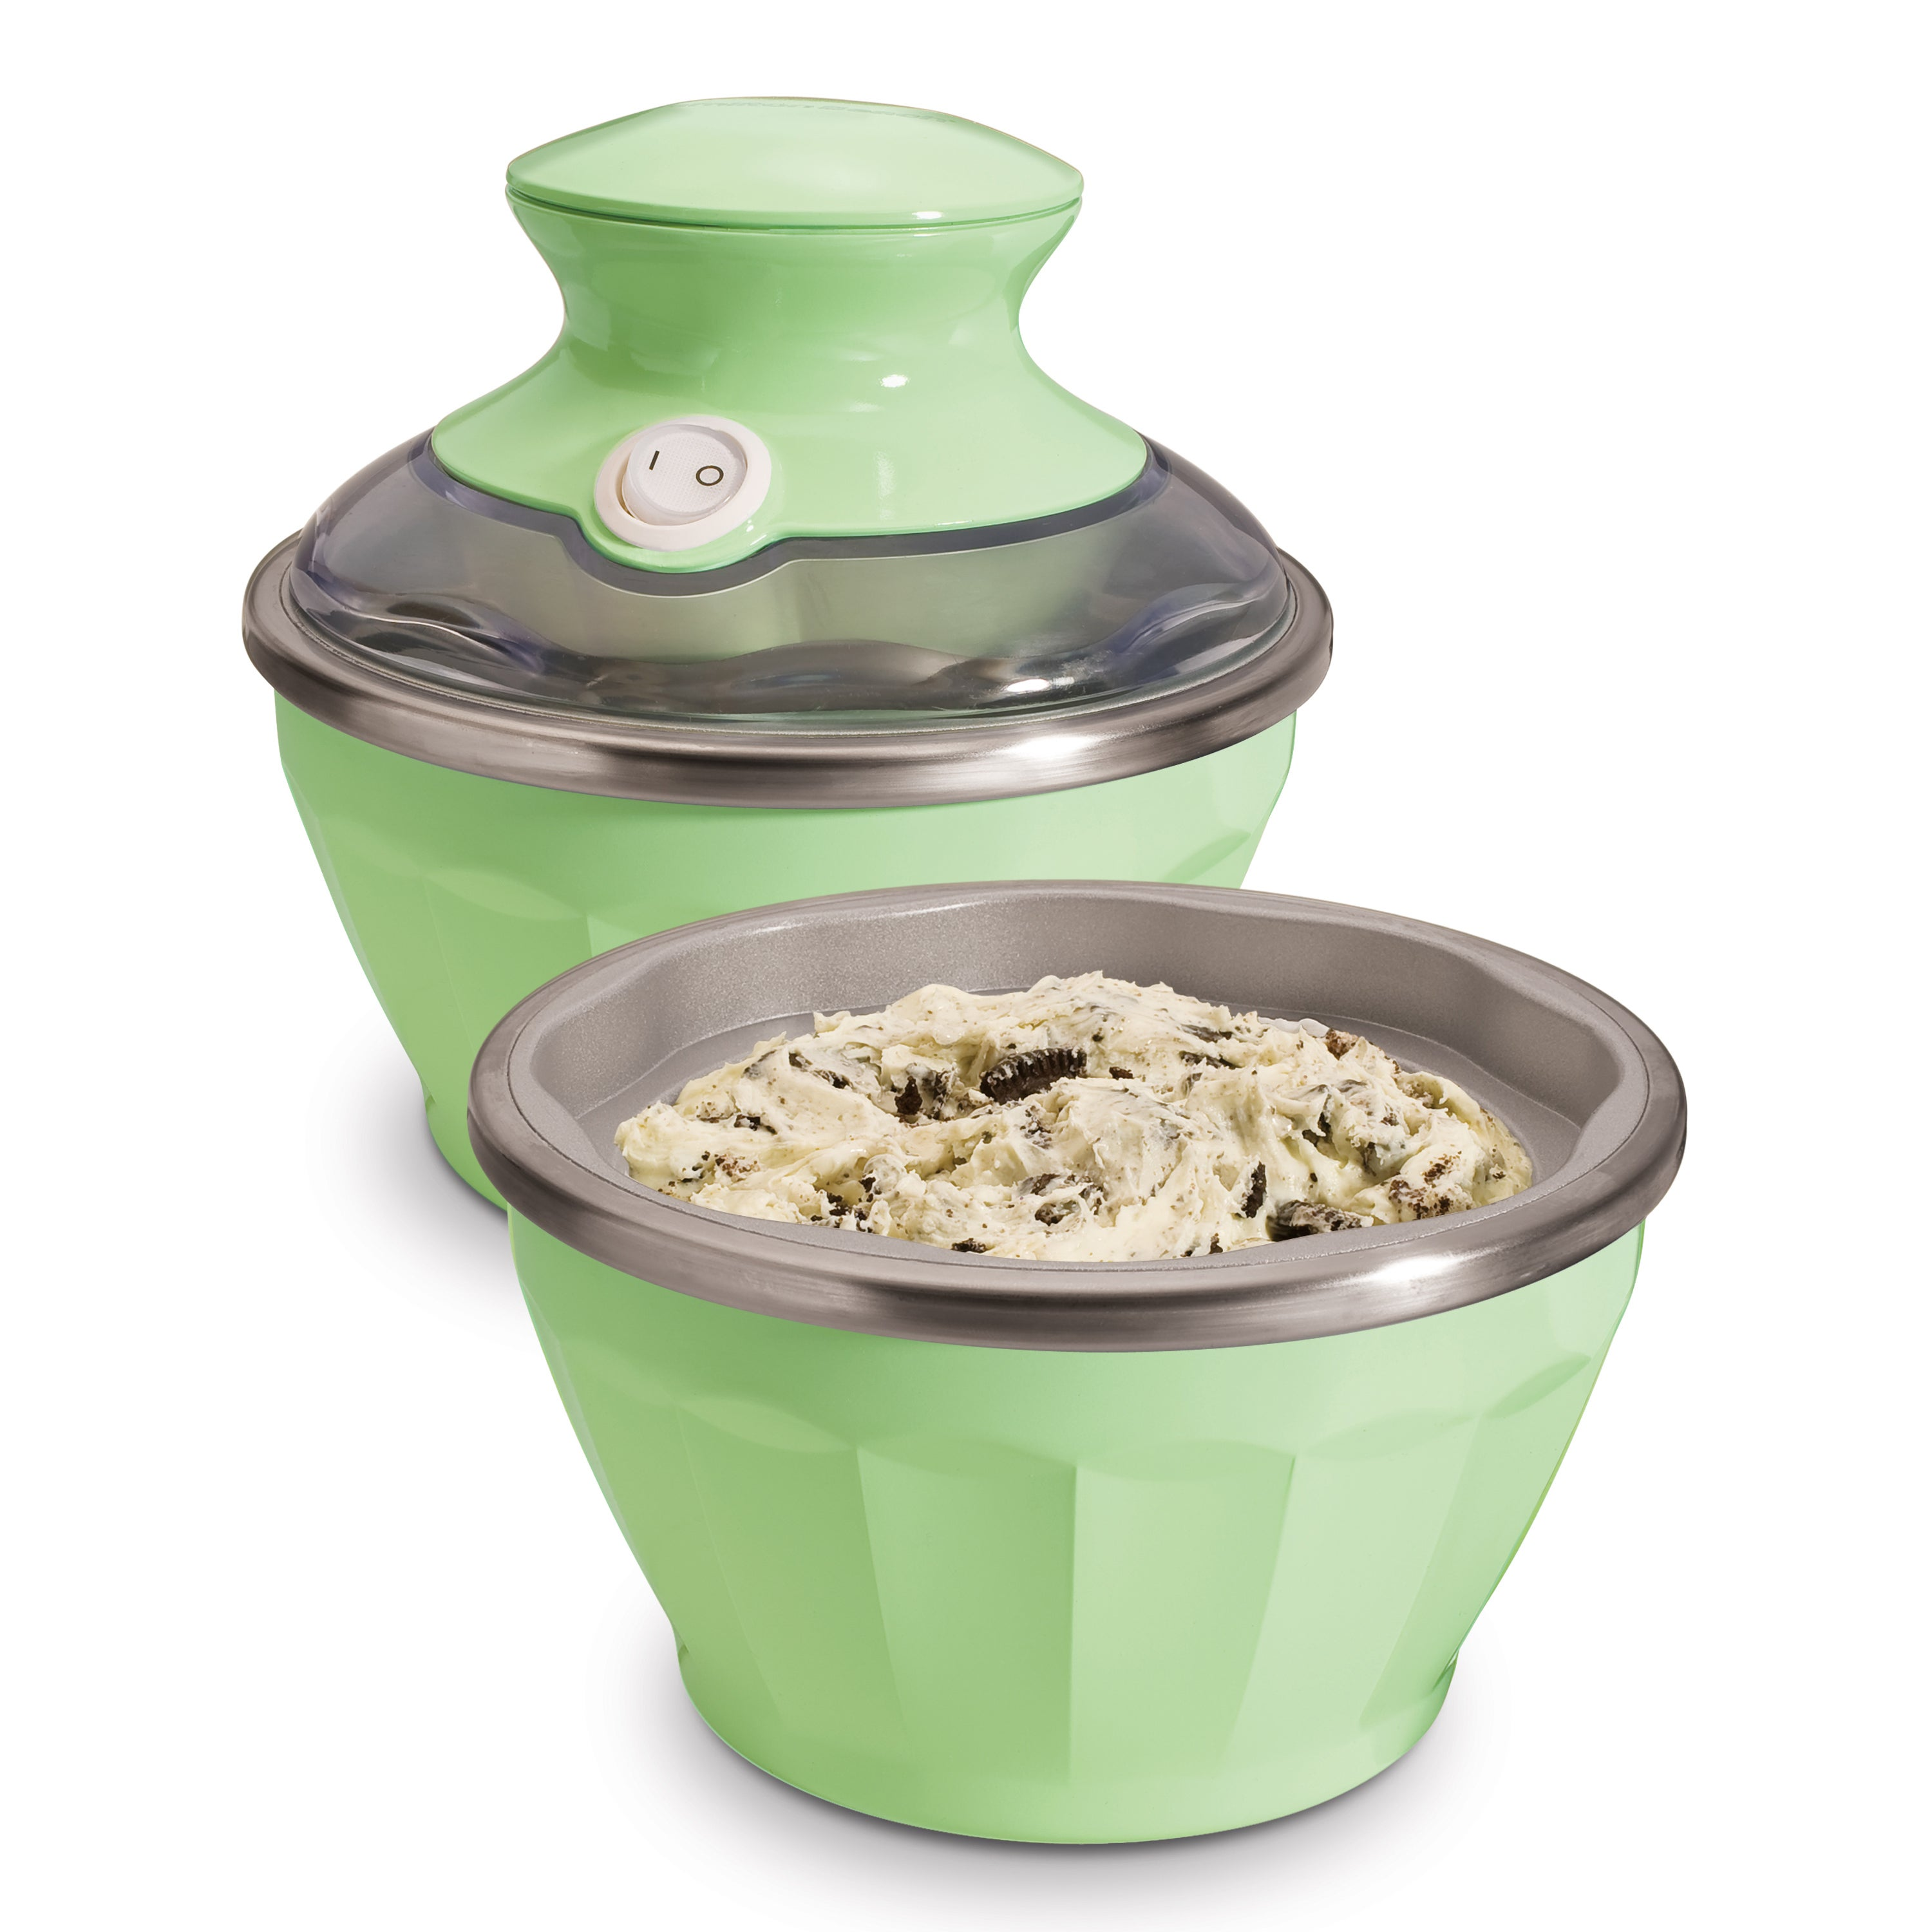 Hamilton Beach Green Ice Cream Maker - Thumbnail 0